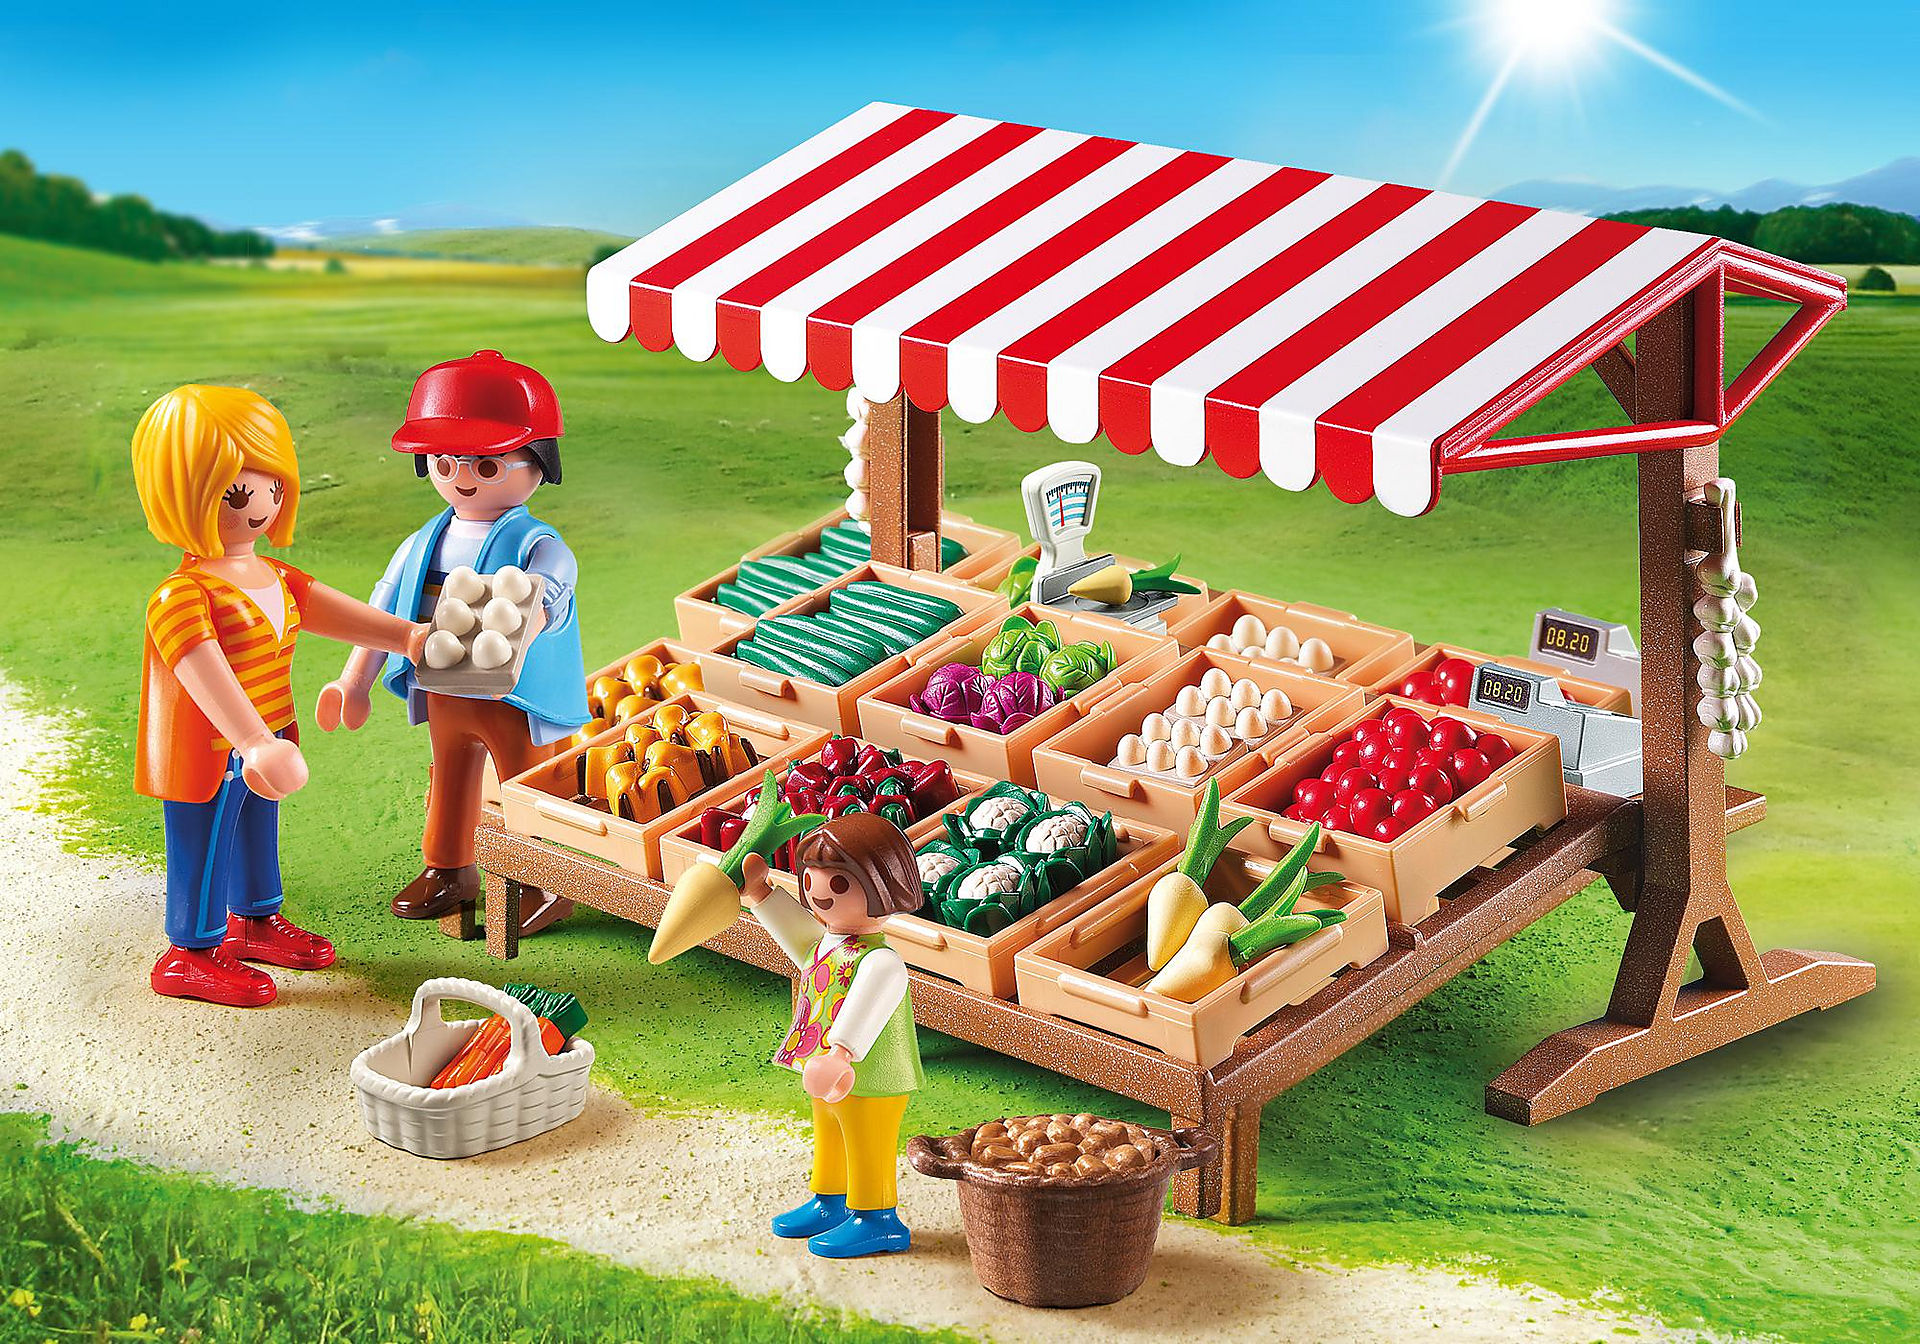 http://media.playmobil.com/i/playmobil/6121_product_detail/Groentekraam